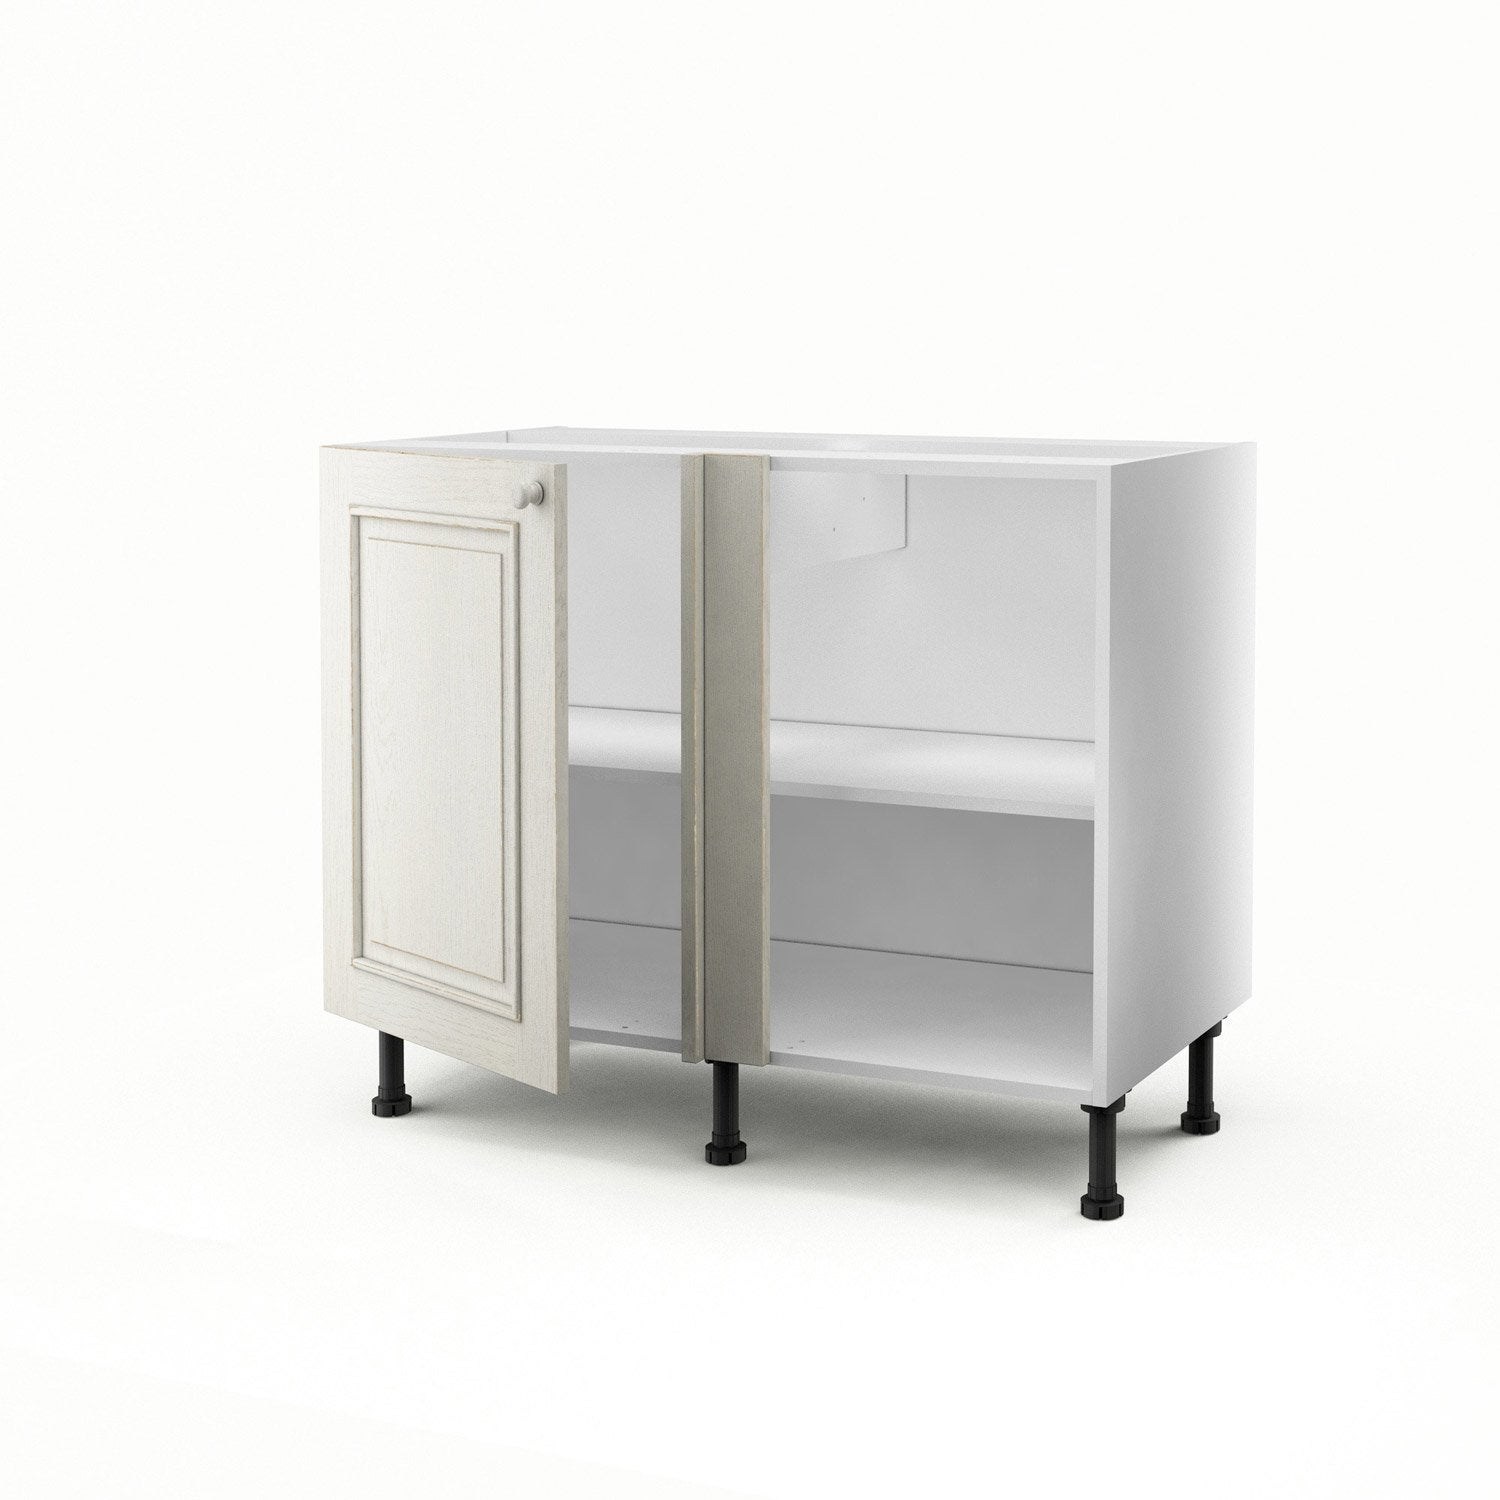 meuble de cuisine bas d 39 angle blanc 1 porte cosy x x cm leroy merlin. Black Bedroom Furniture Sets. Home Design Ideas